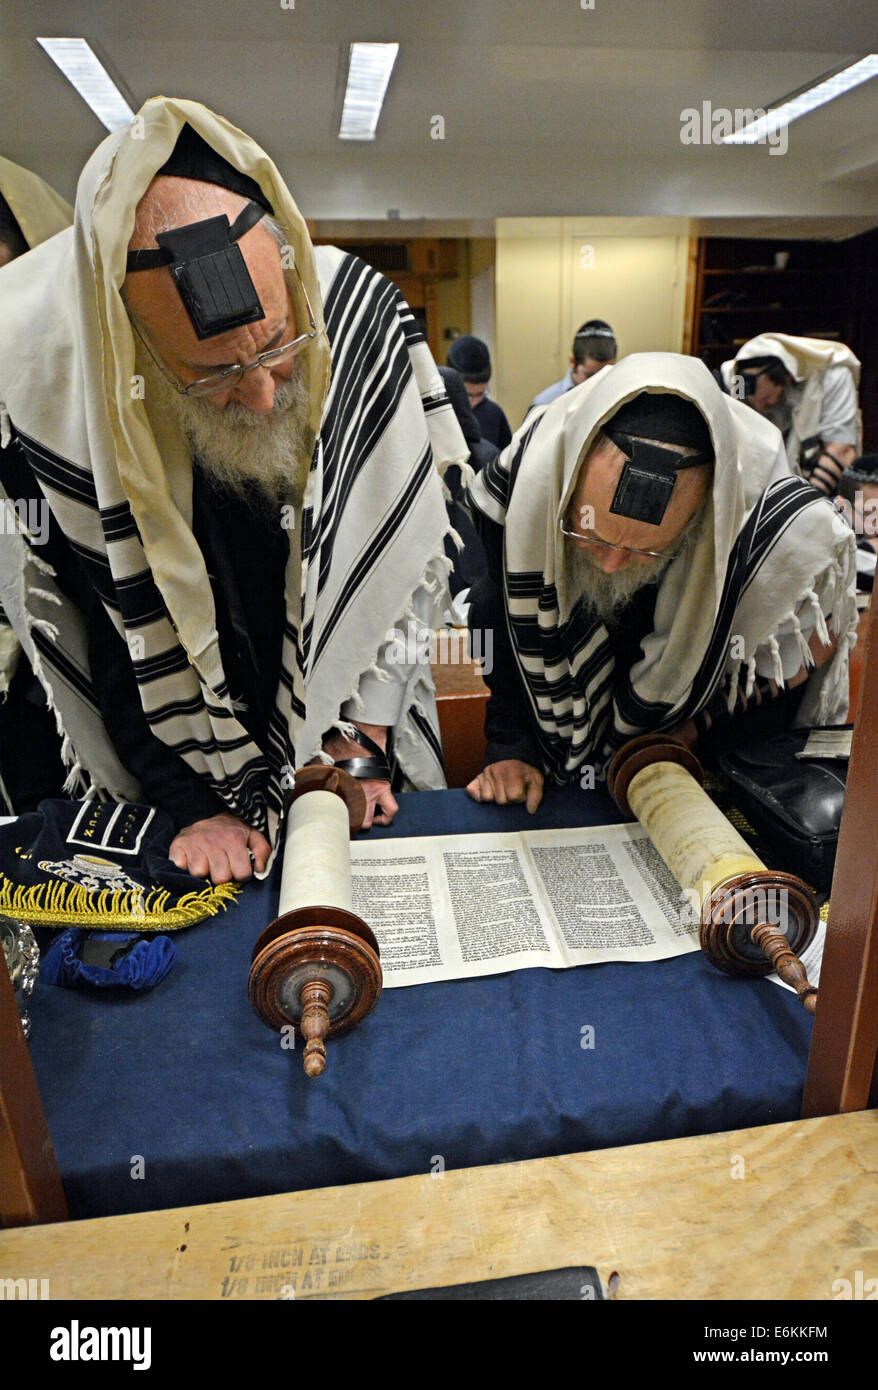 Religious Jewish men reading from the Torah during weekday morning prayers at a synagogue in Brooklyn, New York - Stock Image